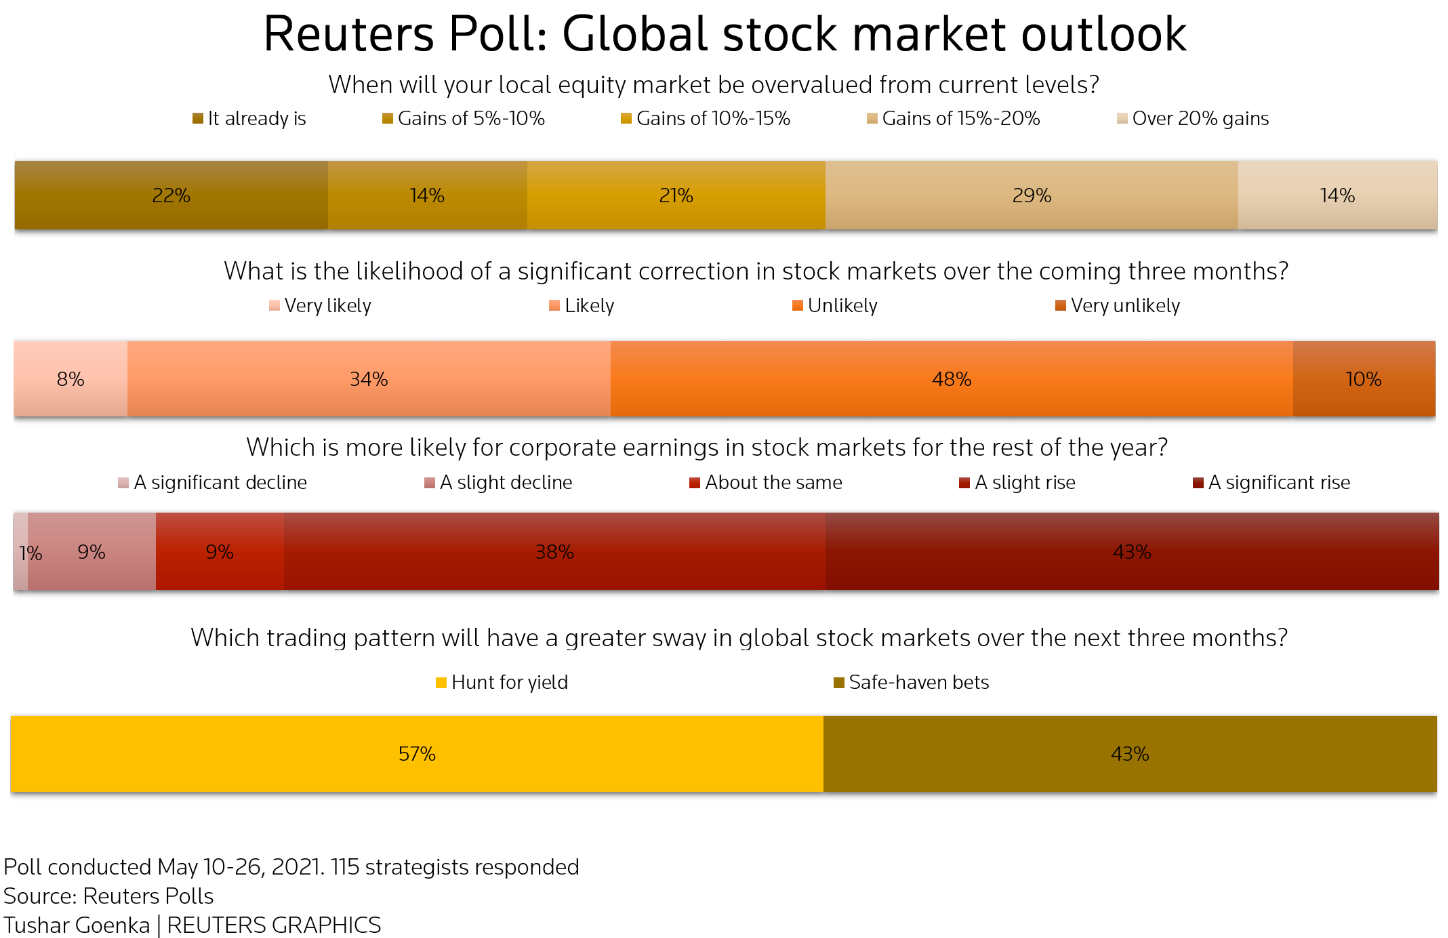 World stocks to rise modestly, correction unlikely - Reuters poll 3